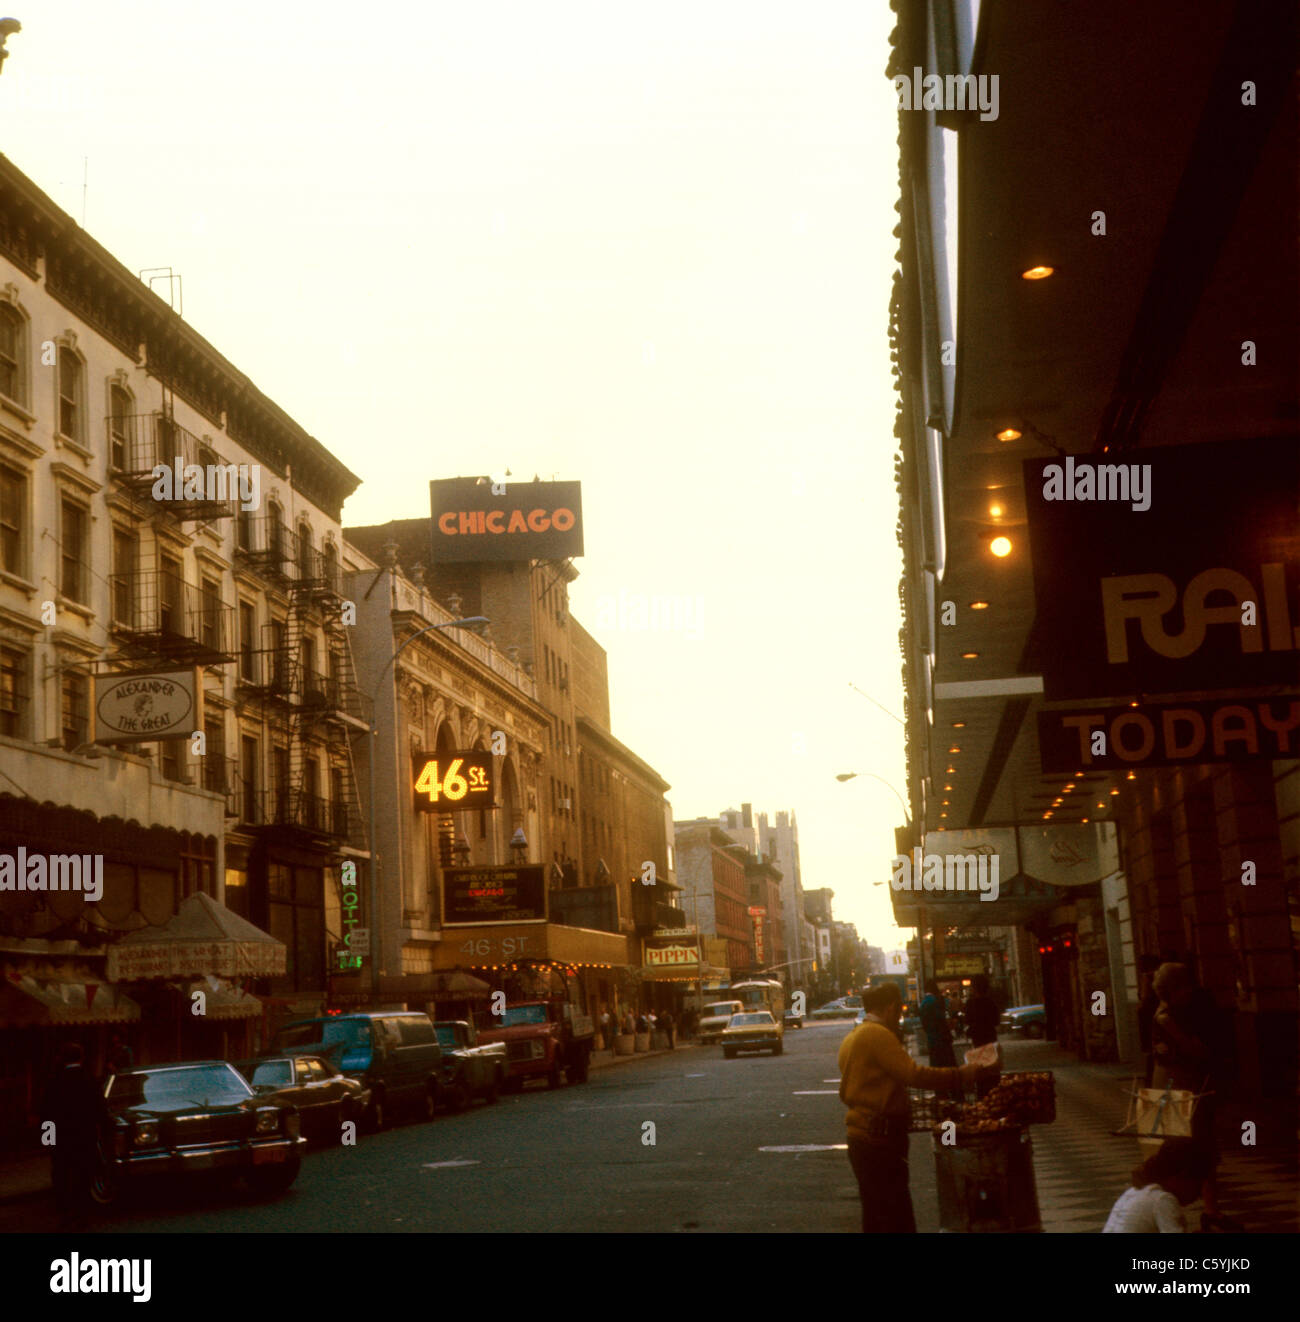 New York City Times Square street scene 1975 Chicago ad 46th street pippin Alexander the Great Broadway - Stock Image